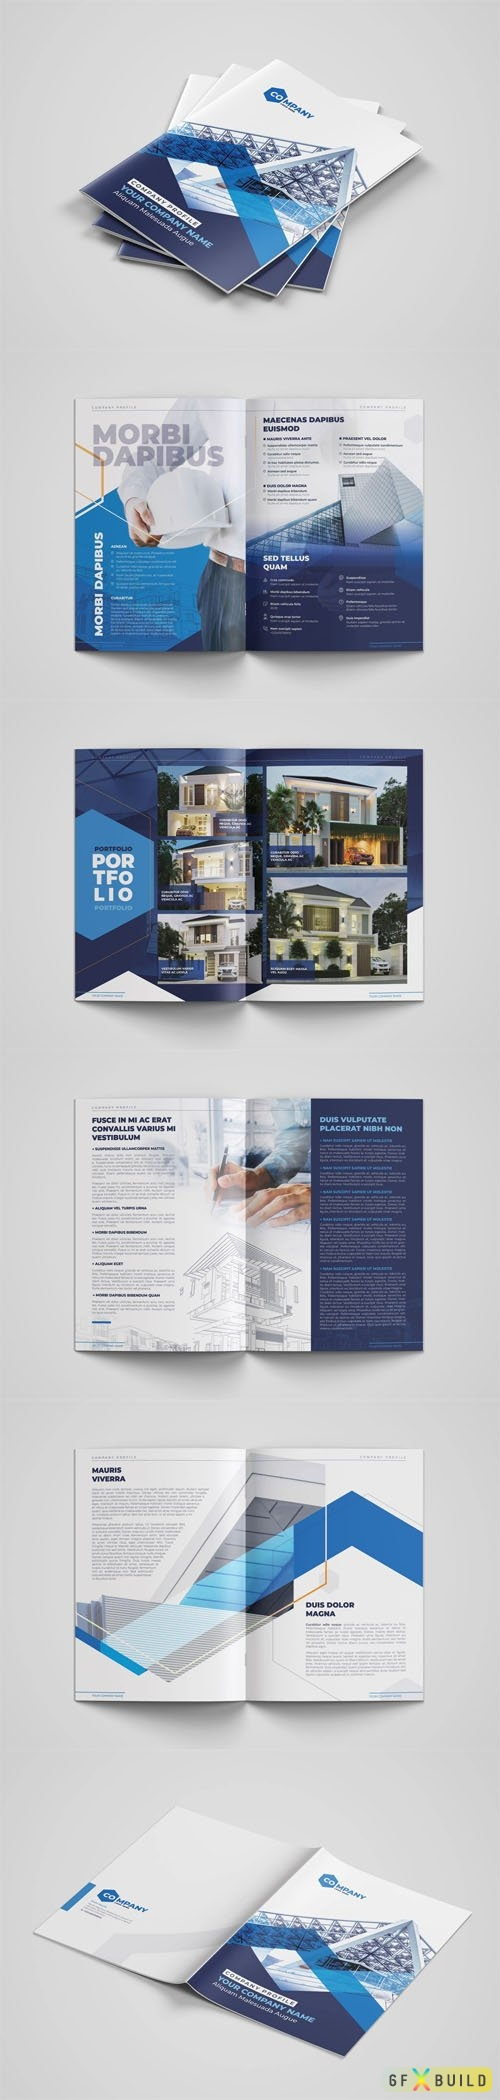 Architect Company Profile - A4 Booklet Indesign Template